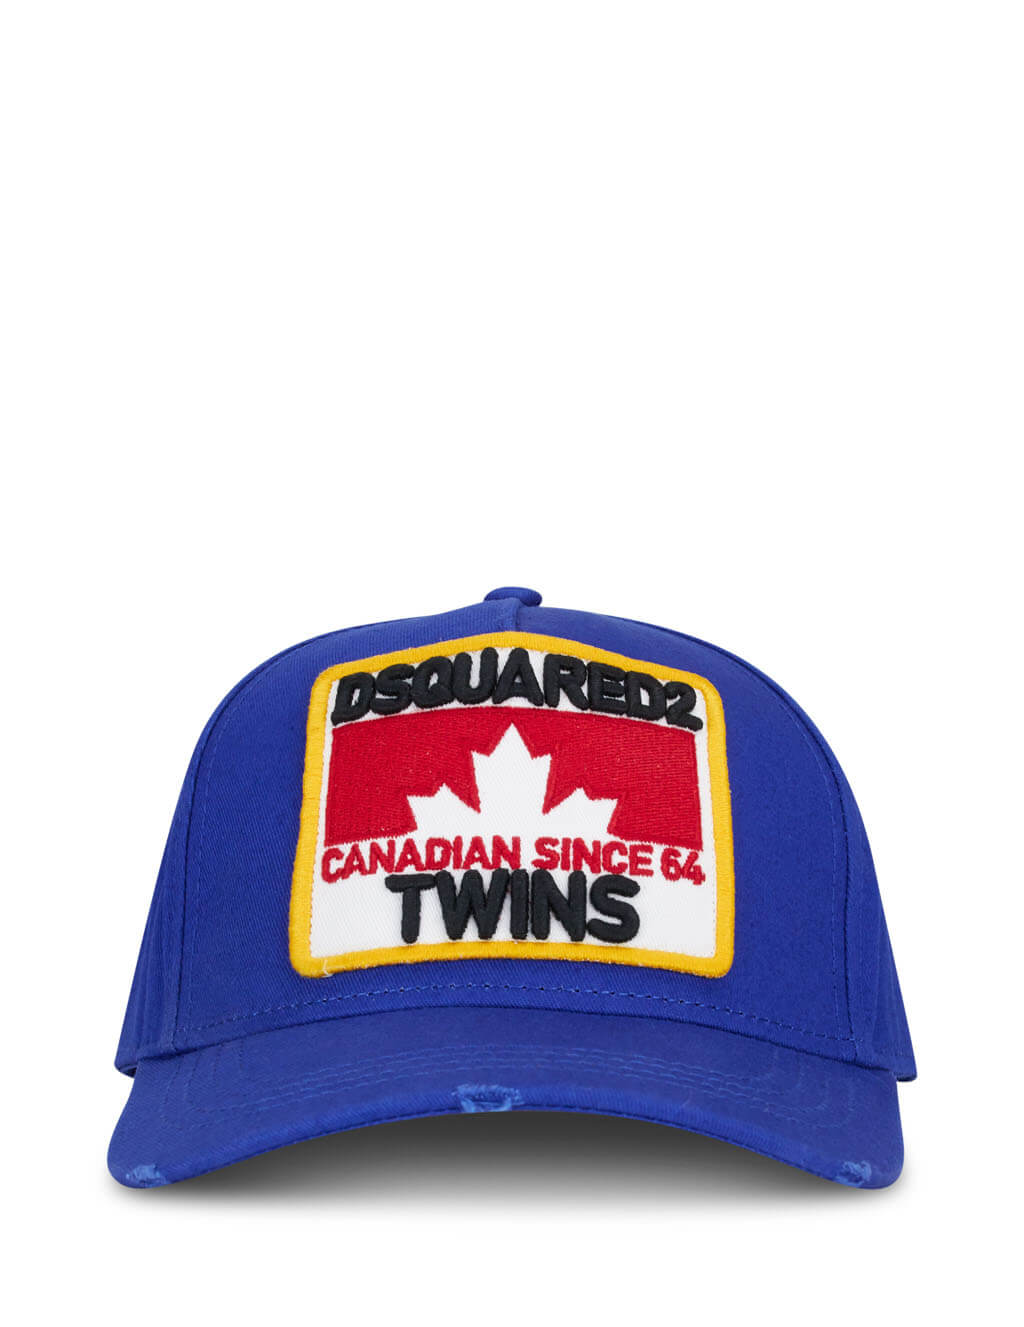 Dsquared2 Men's Giulio Fashion Blue Twins Baseball Cap BCM016005C000013062